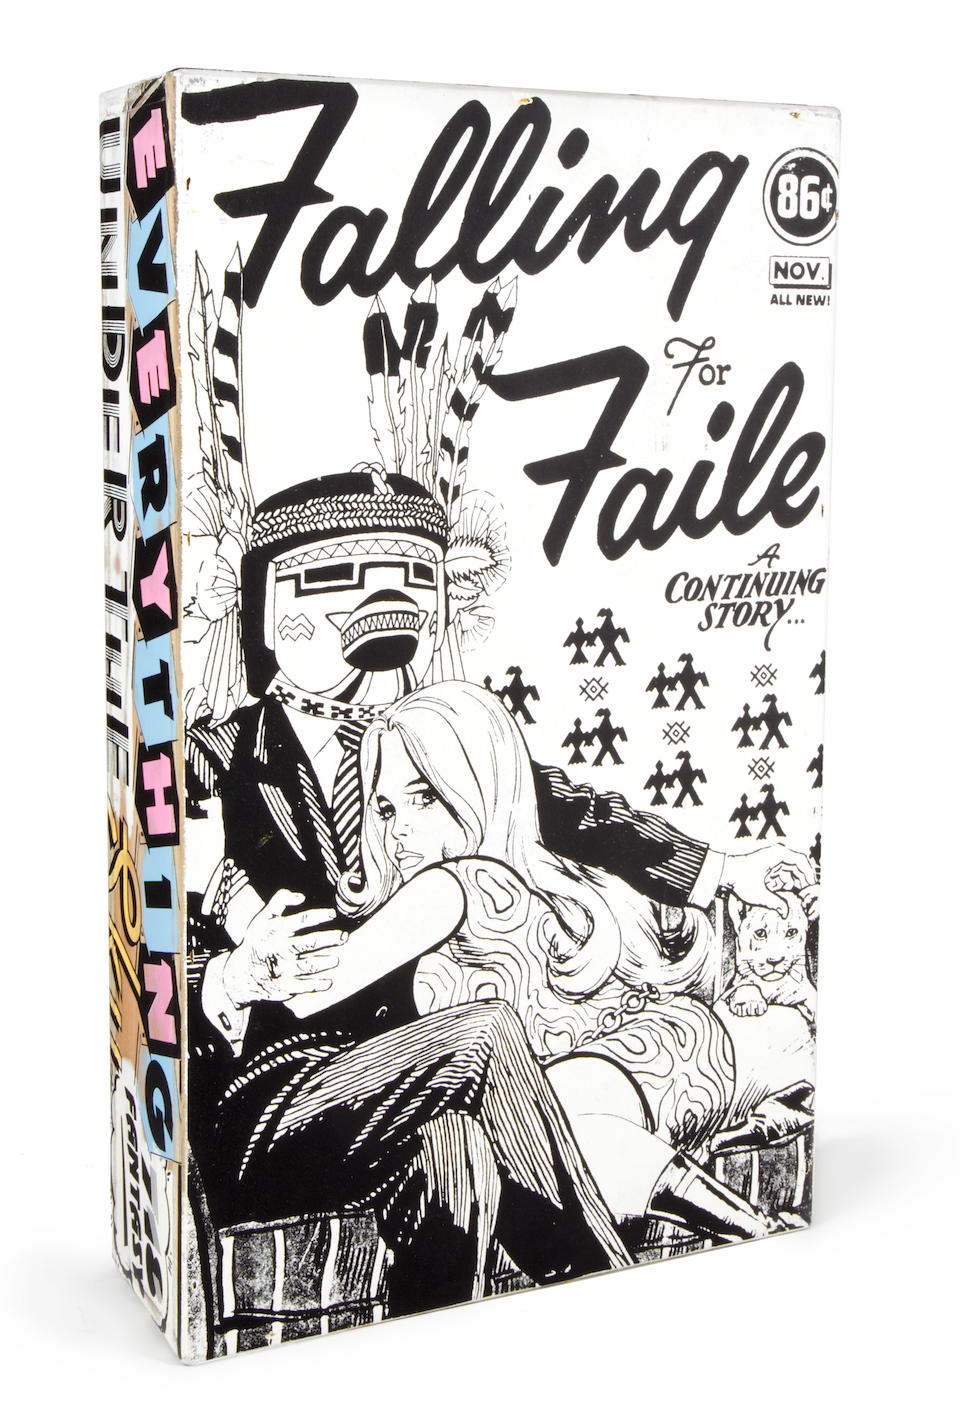 Faile (founded 1999) Faile #16 2008  screenprint and acrylic on wooden box  50.5 by 30 by 10 cm. 19 7/8 by 11 13/16 by 3 15/16 in.  This work was executed in 2008.